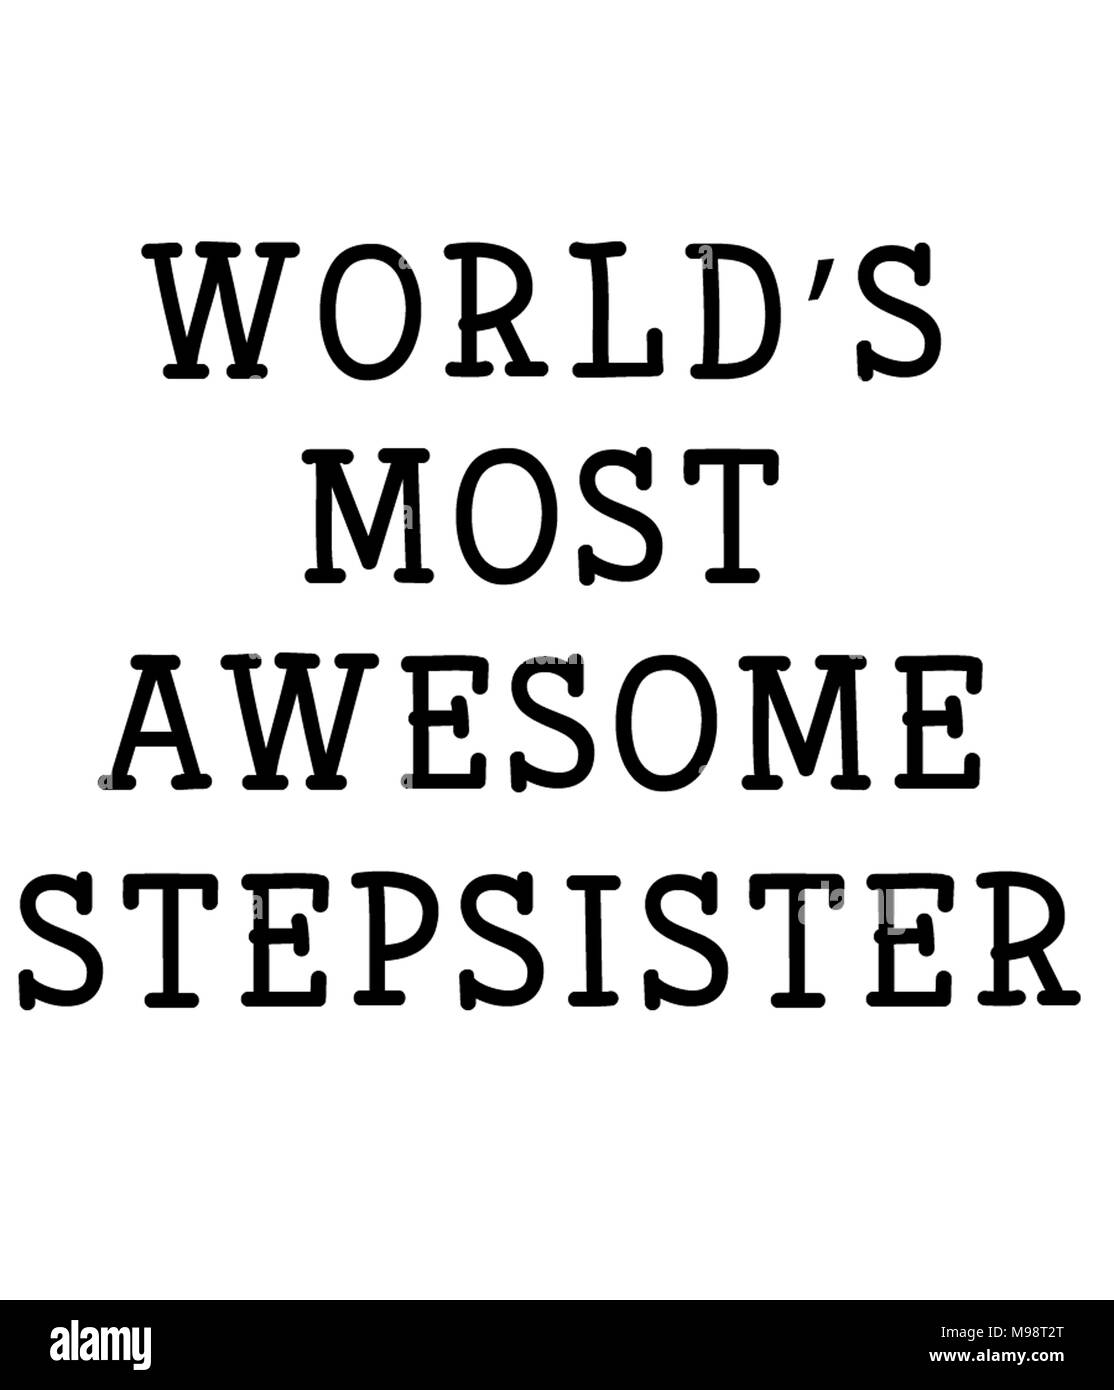 World\'s most awesome stepsister Stock Photo: 177830096 - Alamy